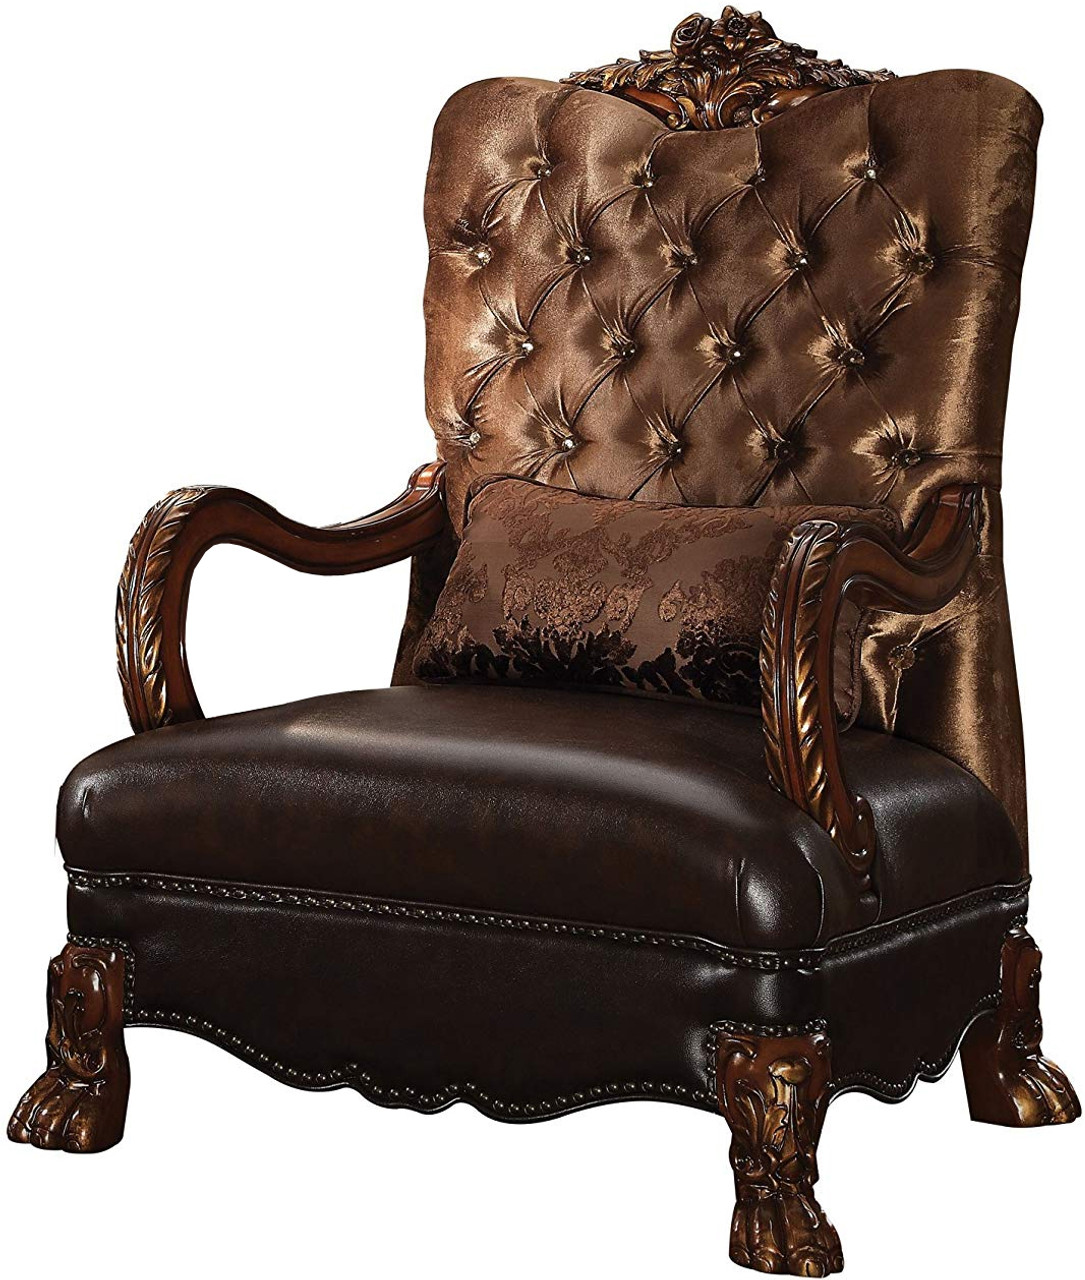 Ackerley Brown Arm Chair Cb Furniture